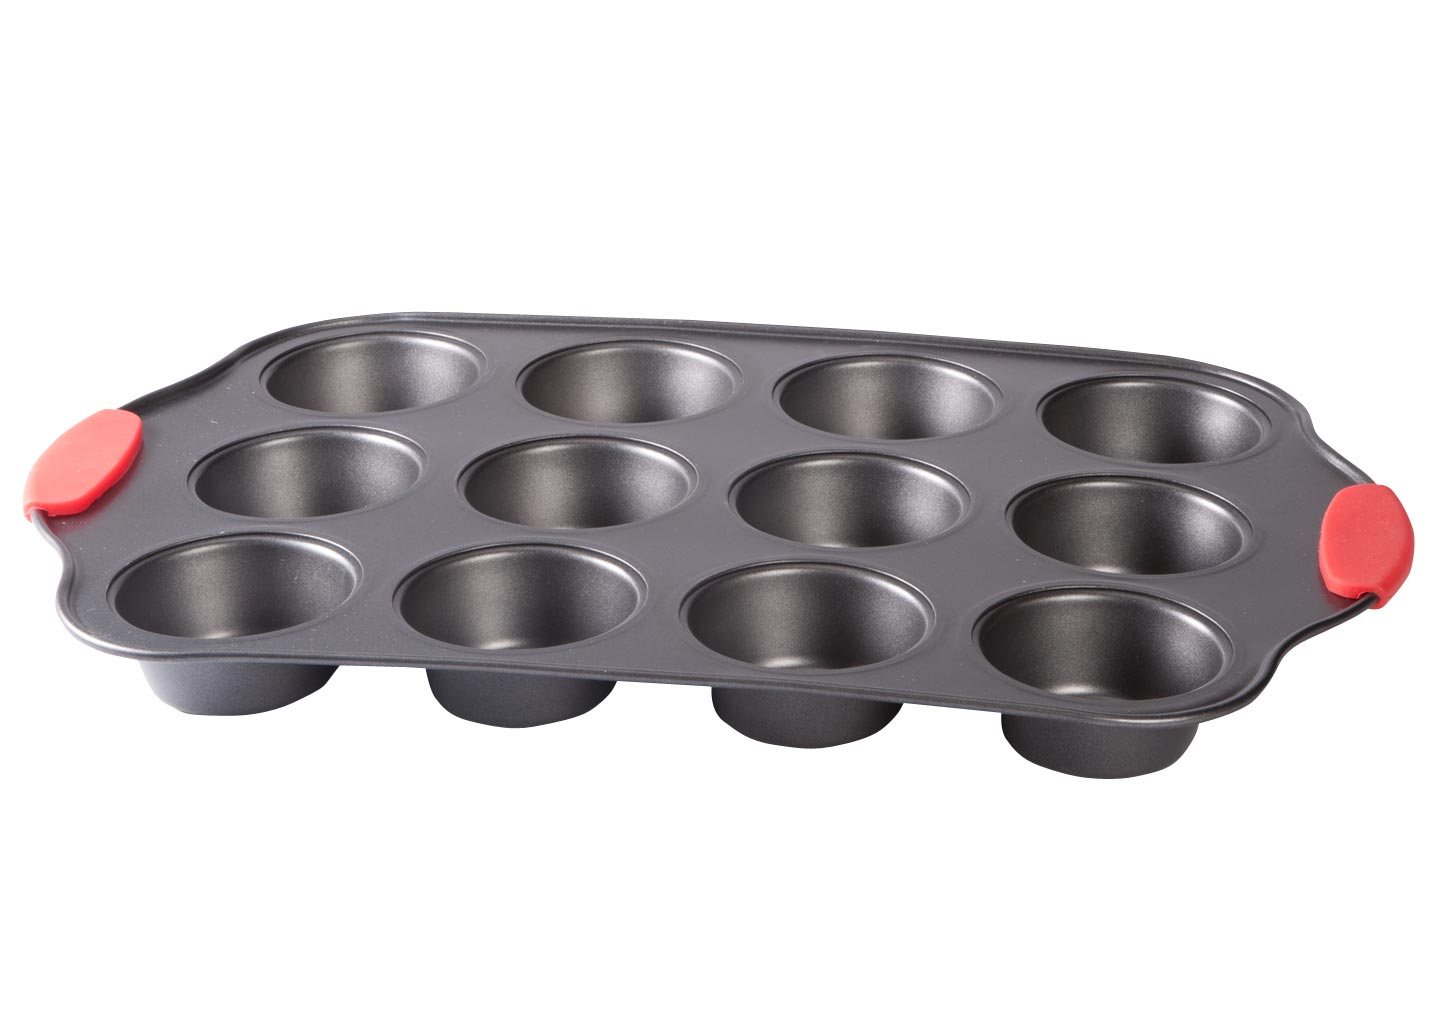 12 Cup Muffin Pan with Red Silicone Handles by HSK by Fox Valley Traders